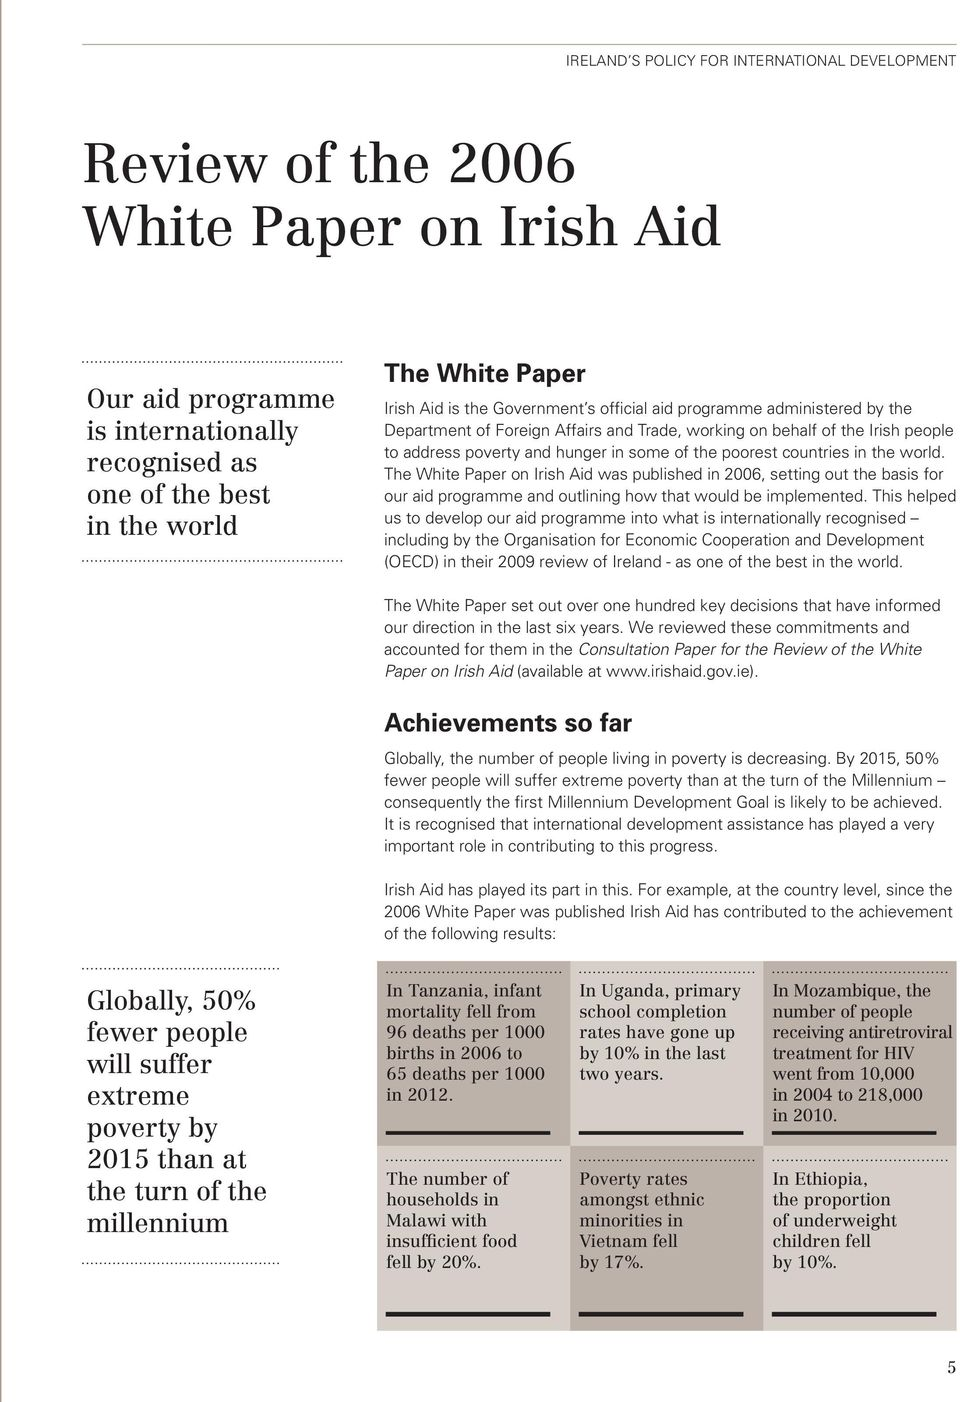 The White Paper on Irish Aid was published in 2006, setting out the basis for our aid programme and outlining how that would be implemented.